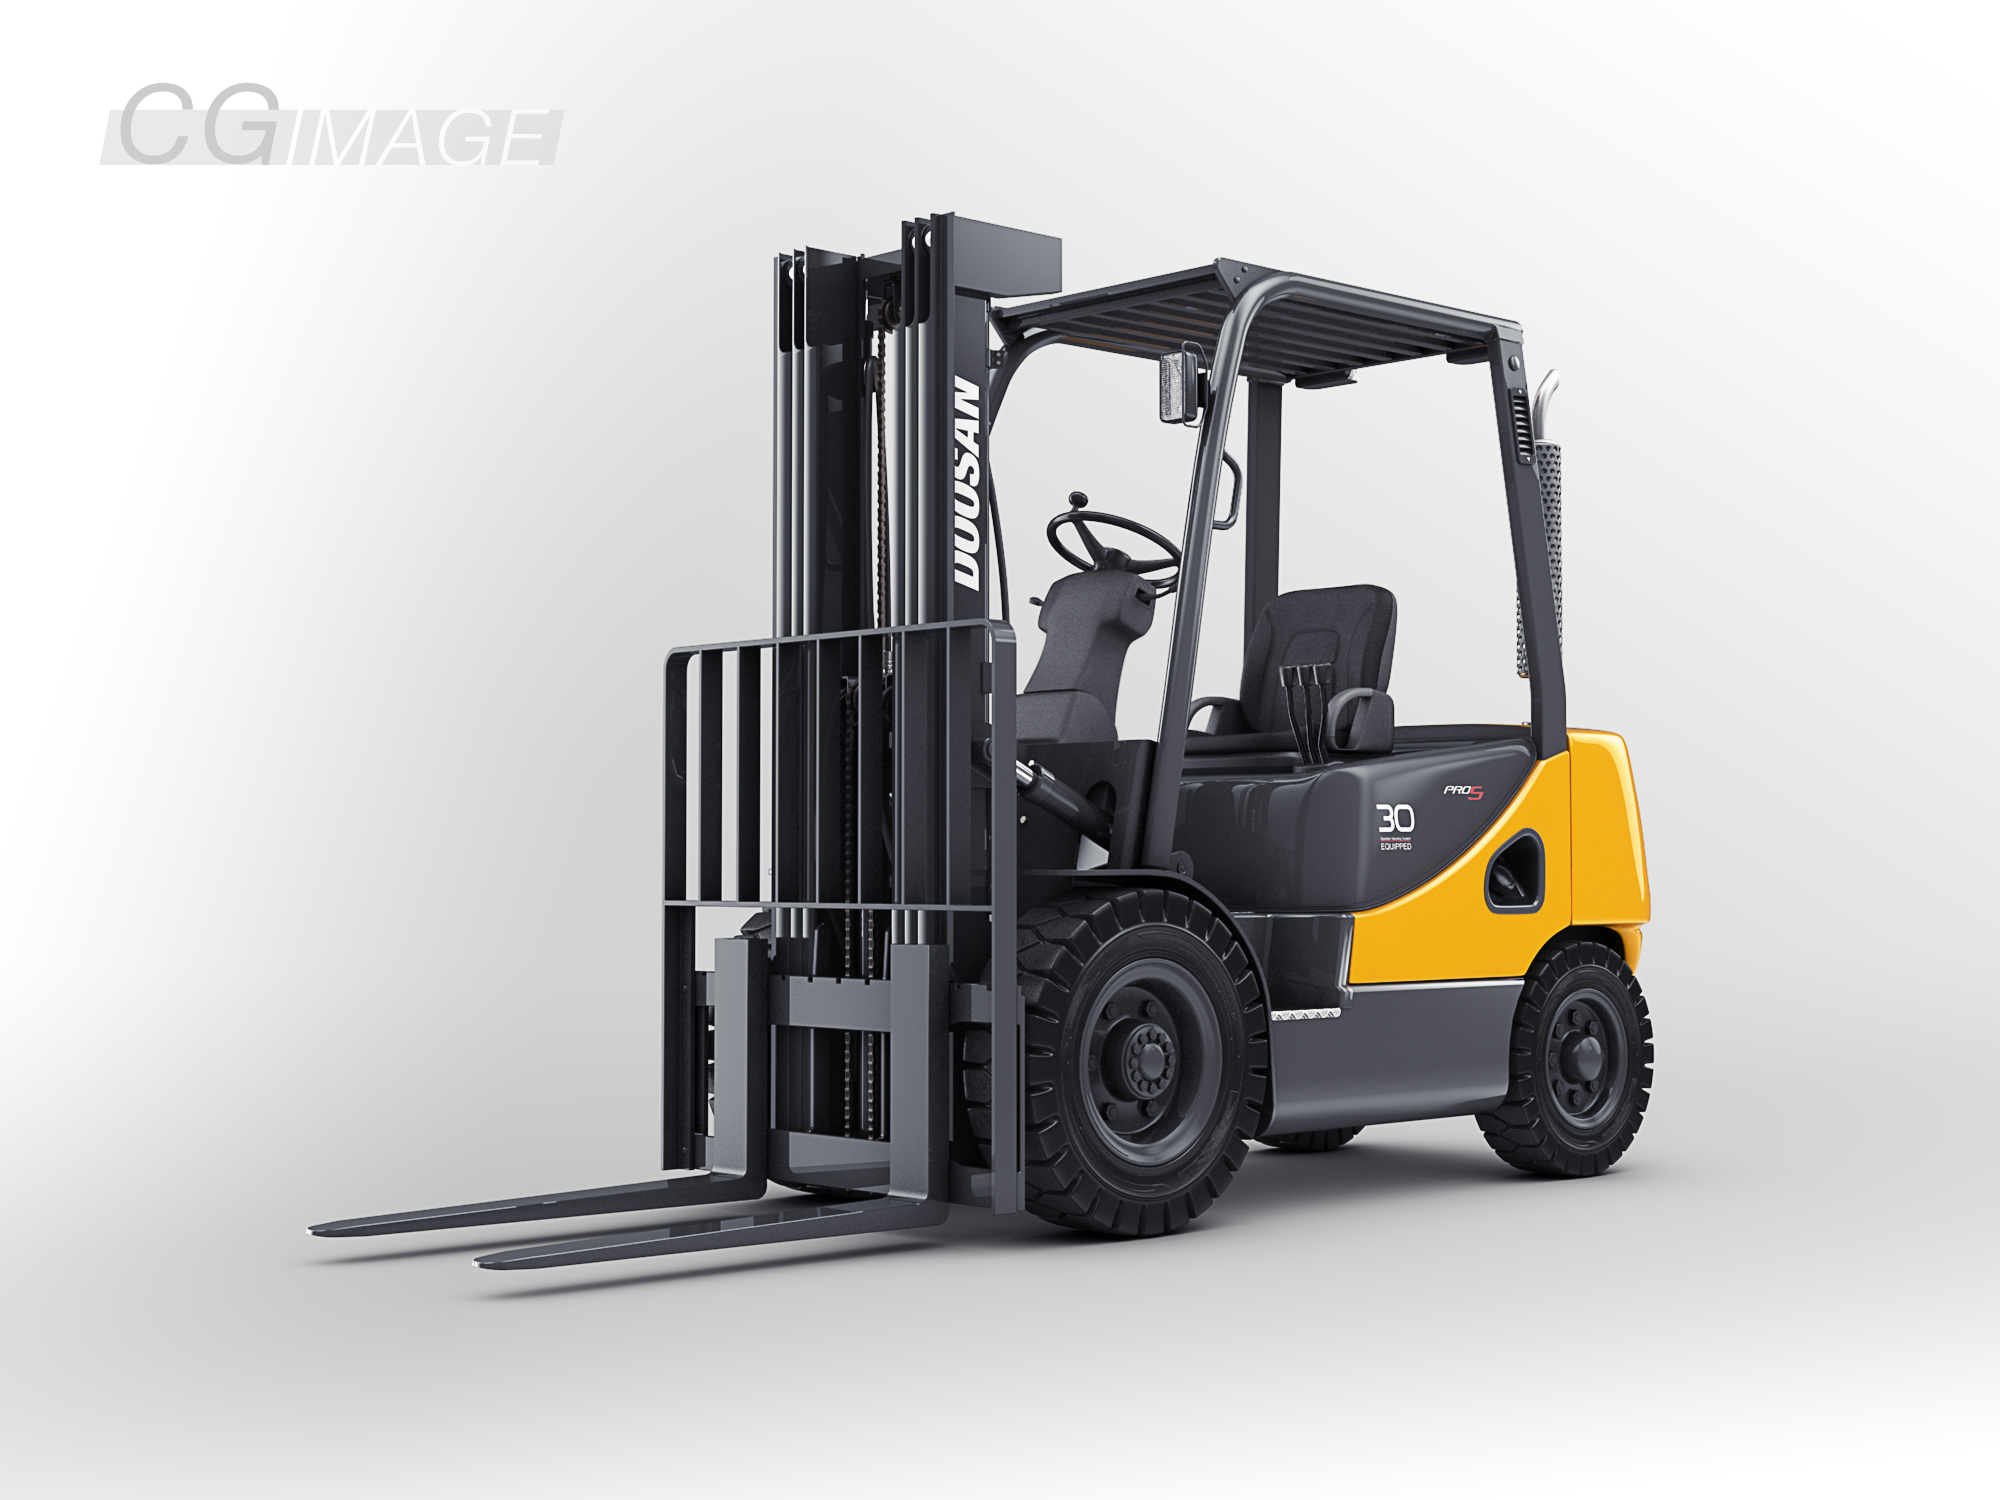 Doosan-D30S Forklift by MUCK-ONE